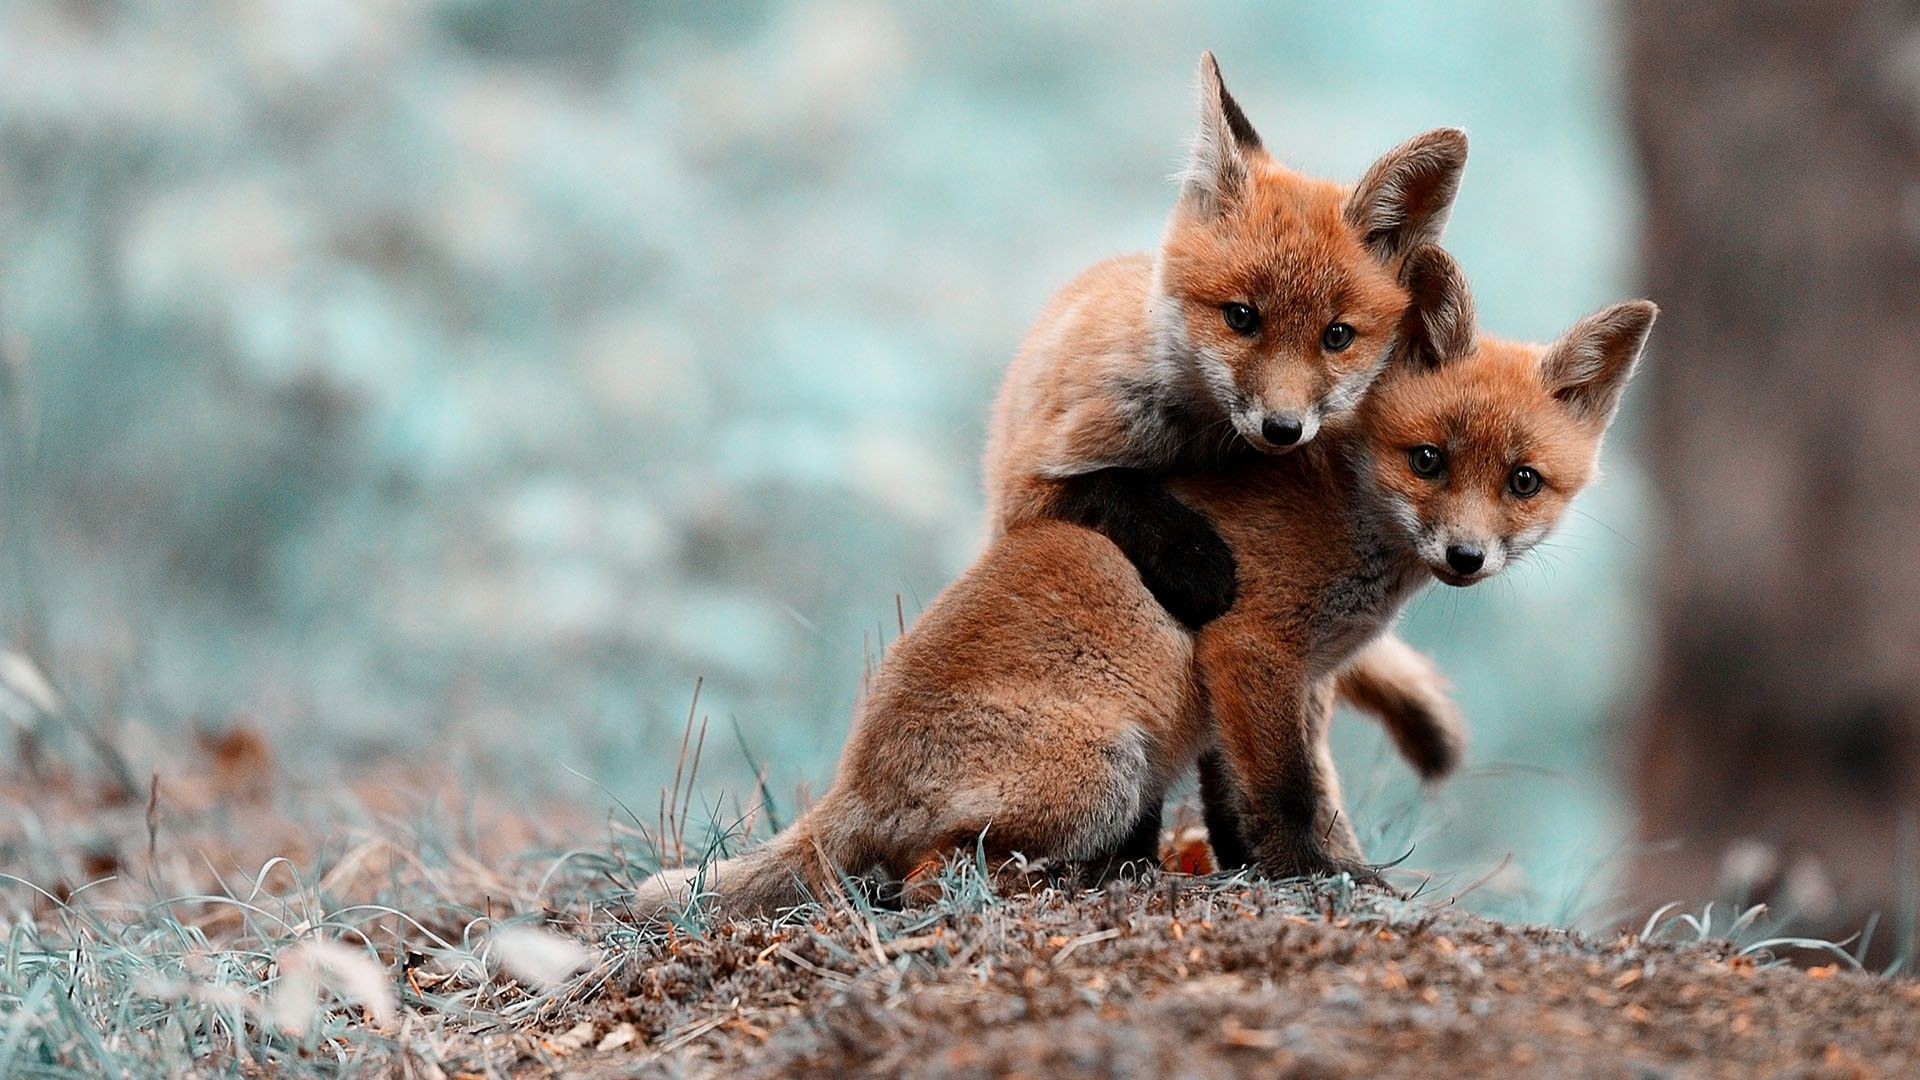 1920x1080 collection animal tags funny forest cute winter animal red foxes love .